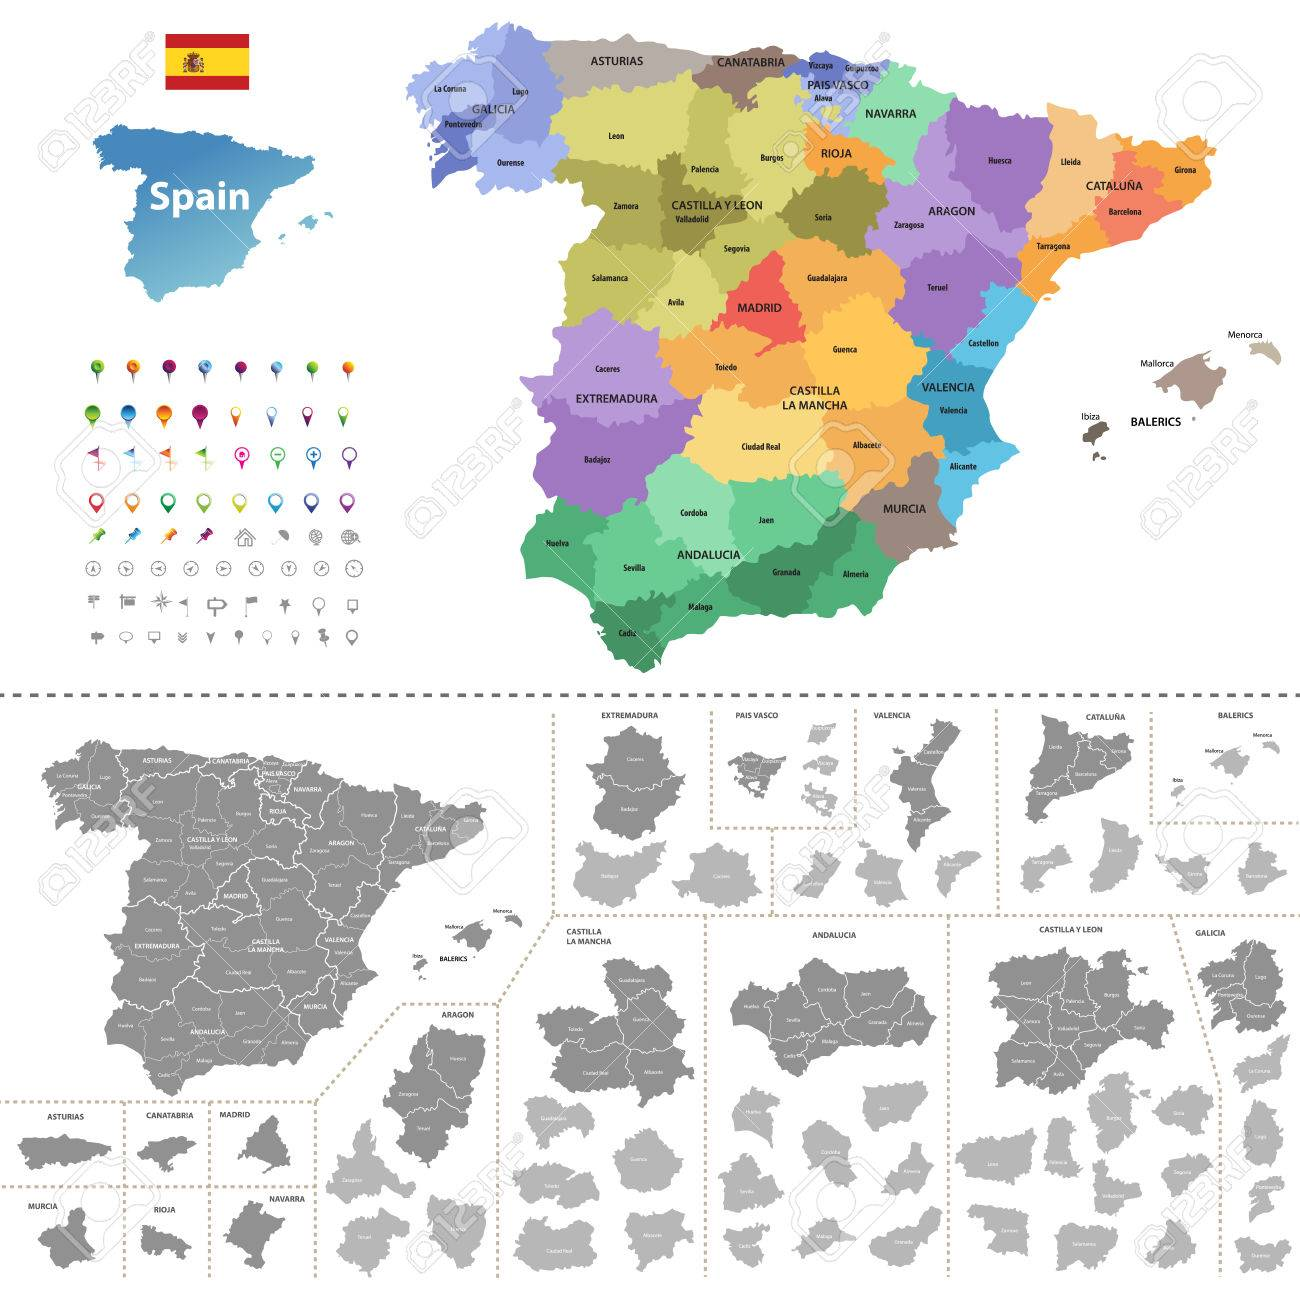 Spain Map colored By Autonomous Communities With Administrative